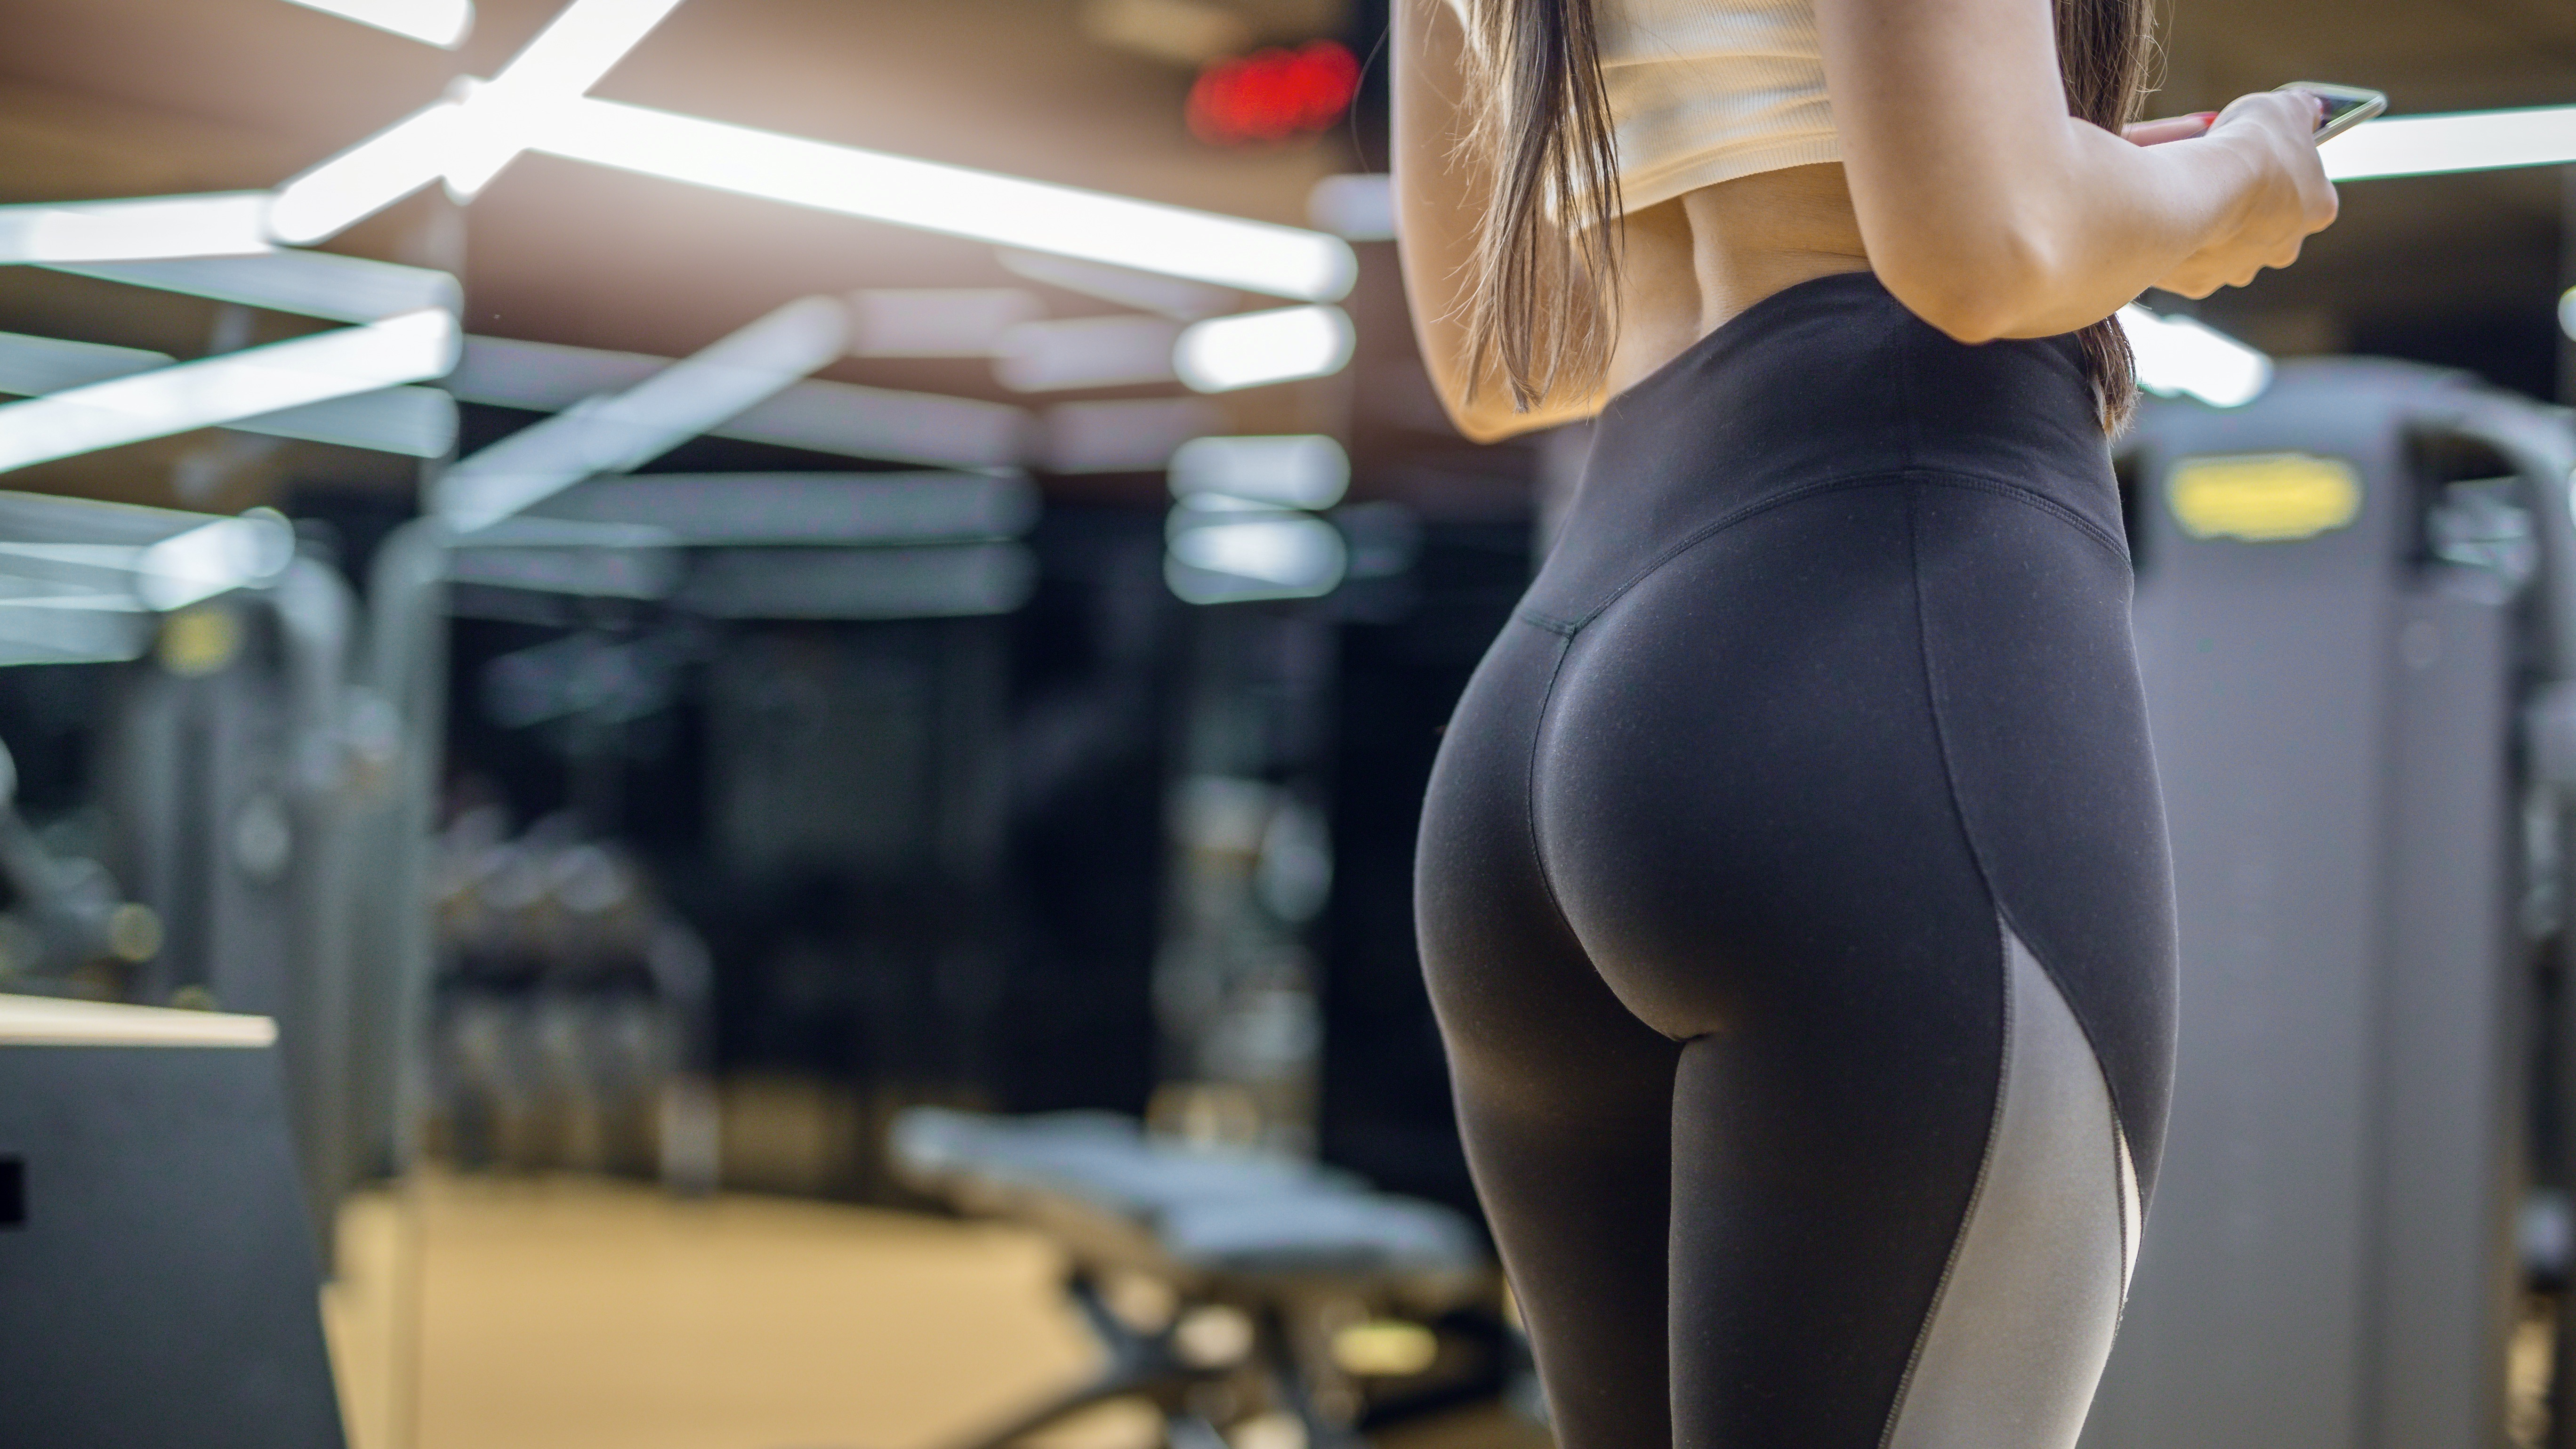 Nice Ass Butt best home workout for glutes: how to get a big butt locked